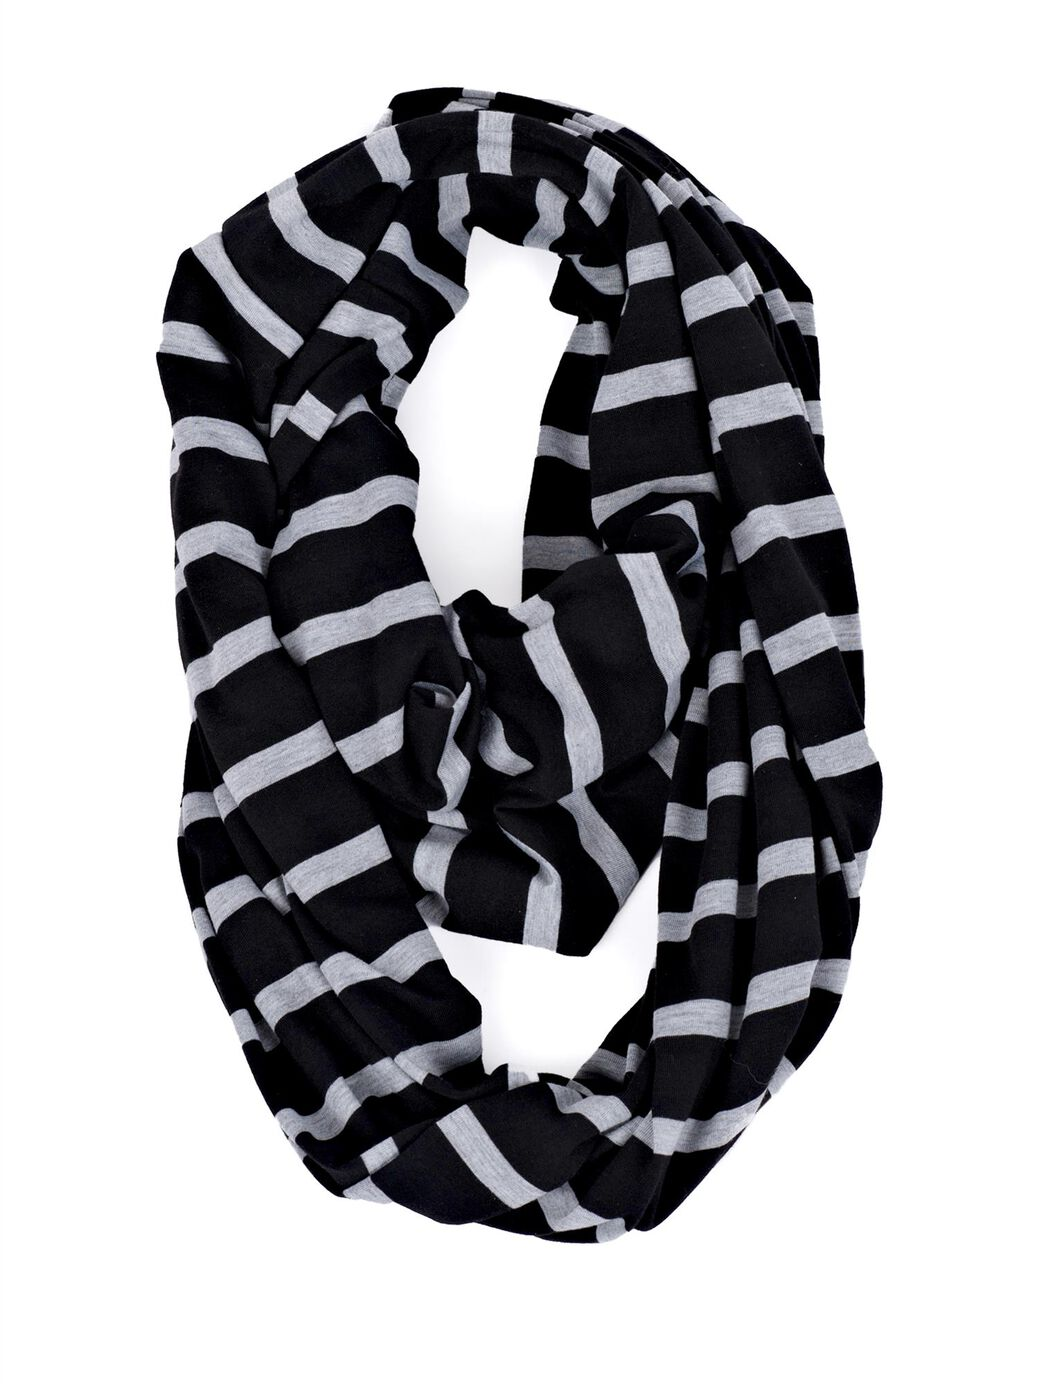 Itzy Ritzy Nursing Scarf- Grey/Black Stripe at Motherhood Maternity in Victor, NY | Tuggl